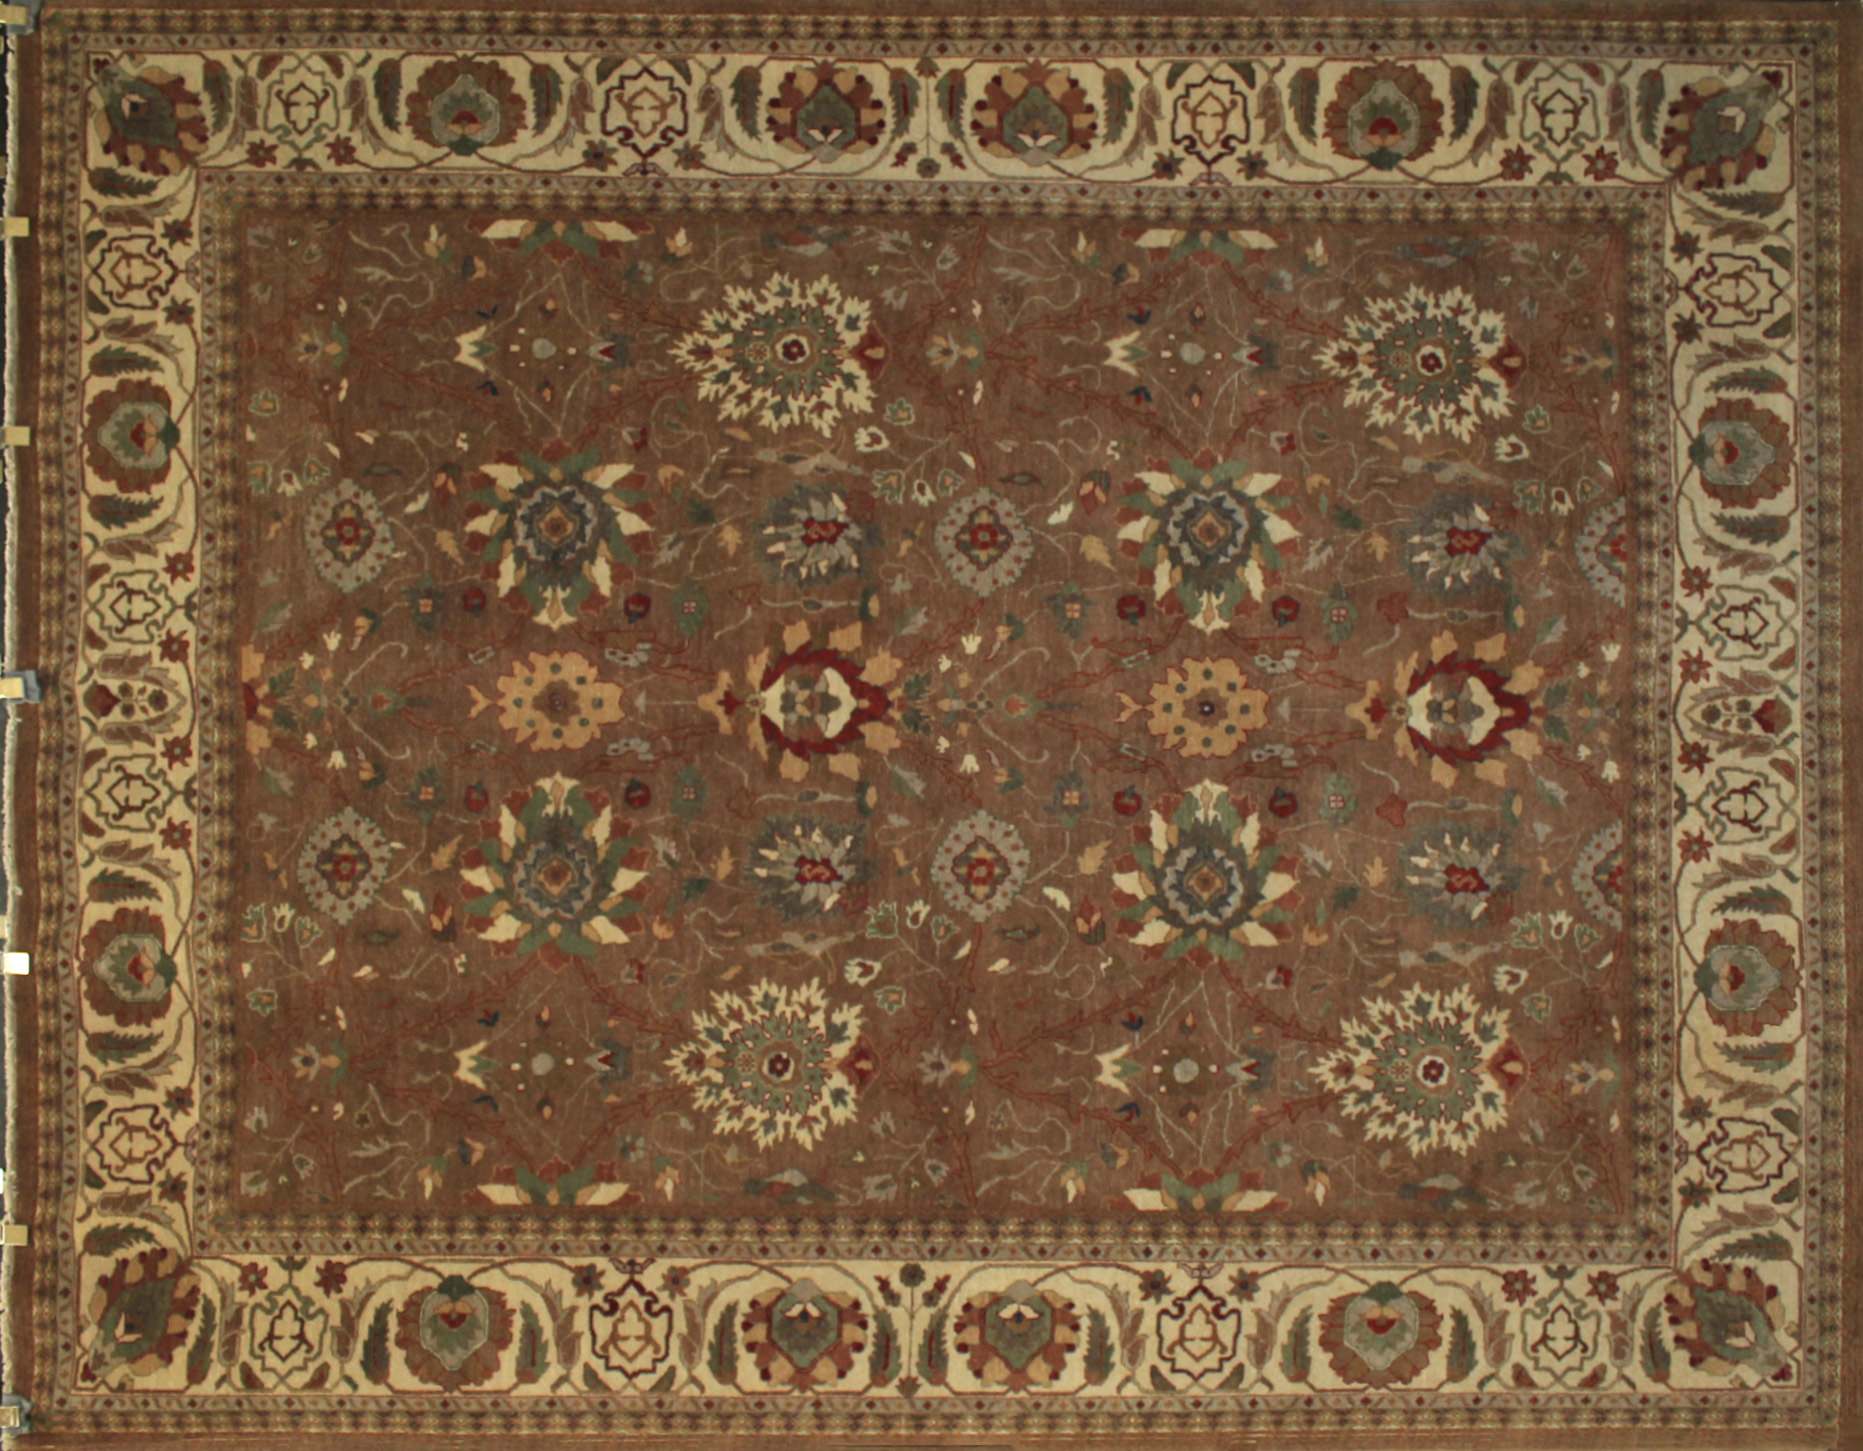 8x10 Traditional Hand Knotted Wool Area Rug - MR6194